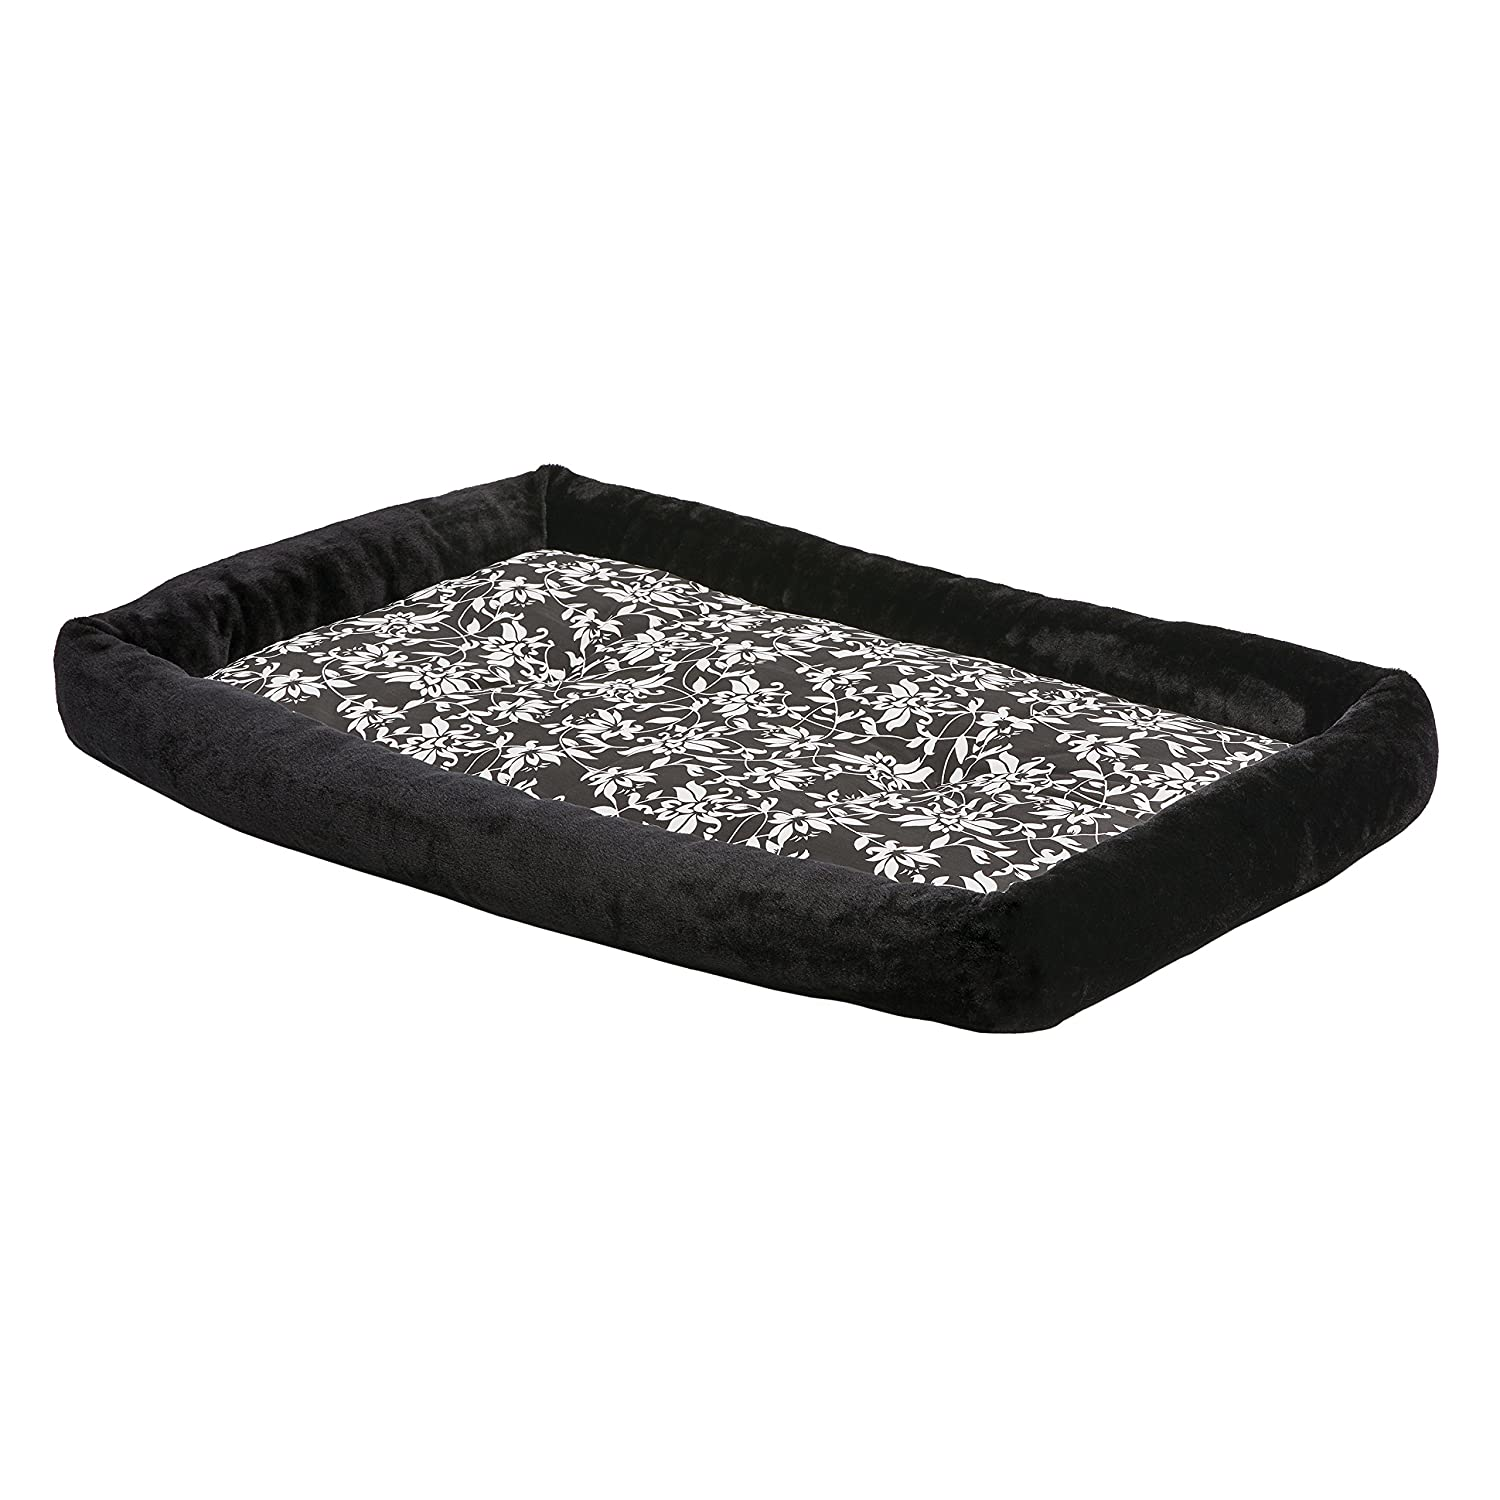 Black 48\ Black 48\ Midwest Homes for Pets 40248-BKF Couture Sofia Bolster Dog Bed in Black & White Floral Pattern, Black